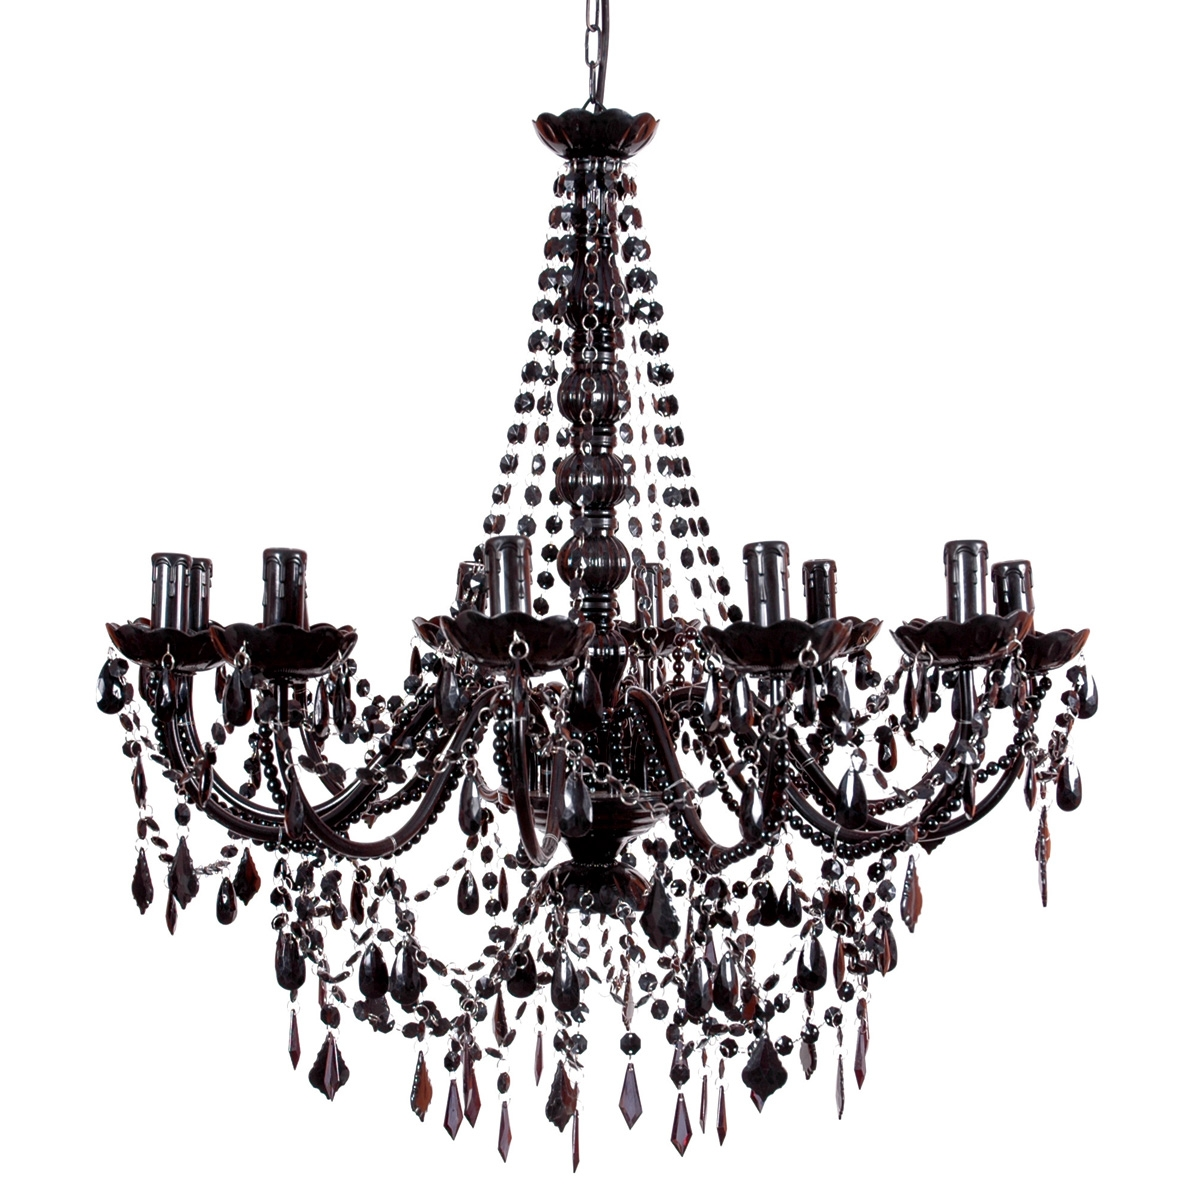 Wall Mounted Black Chandeliers Bedroom Howiezine Intended For Wall Mounted Chandeliers (View 11 of 25)